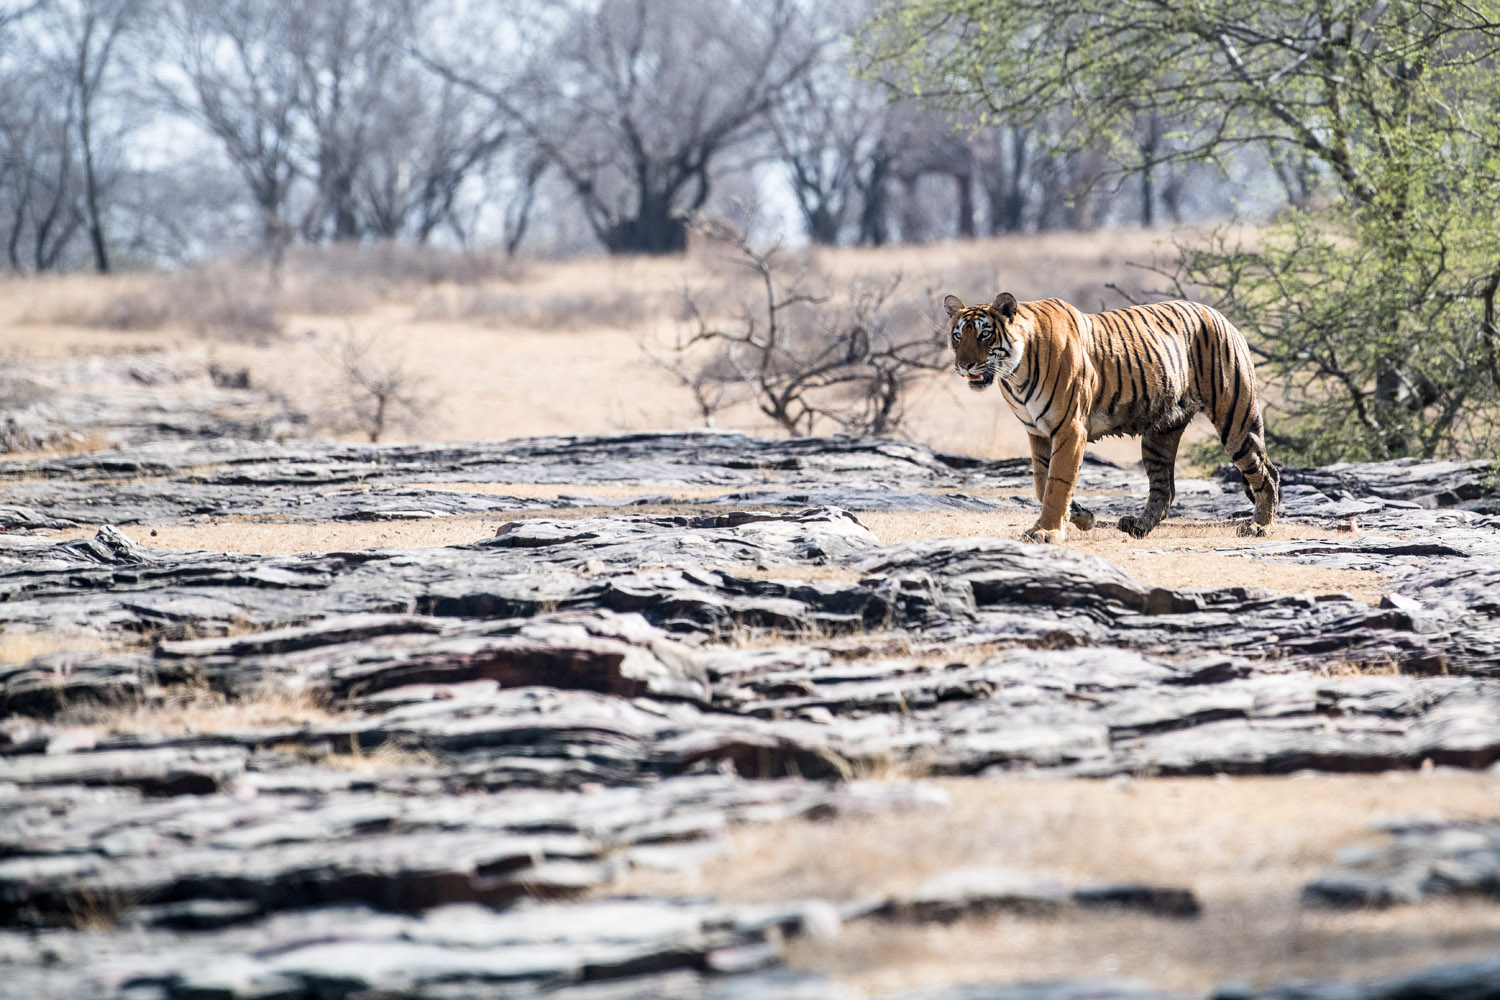 Bengal tigress on rocky slope, Ranthambhore National Park, Rajasthan, India